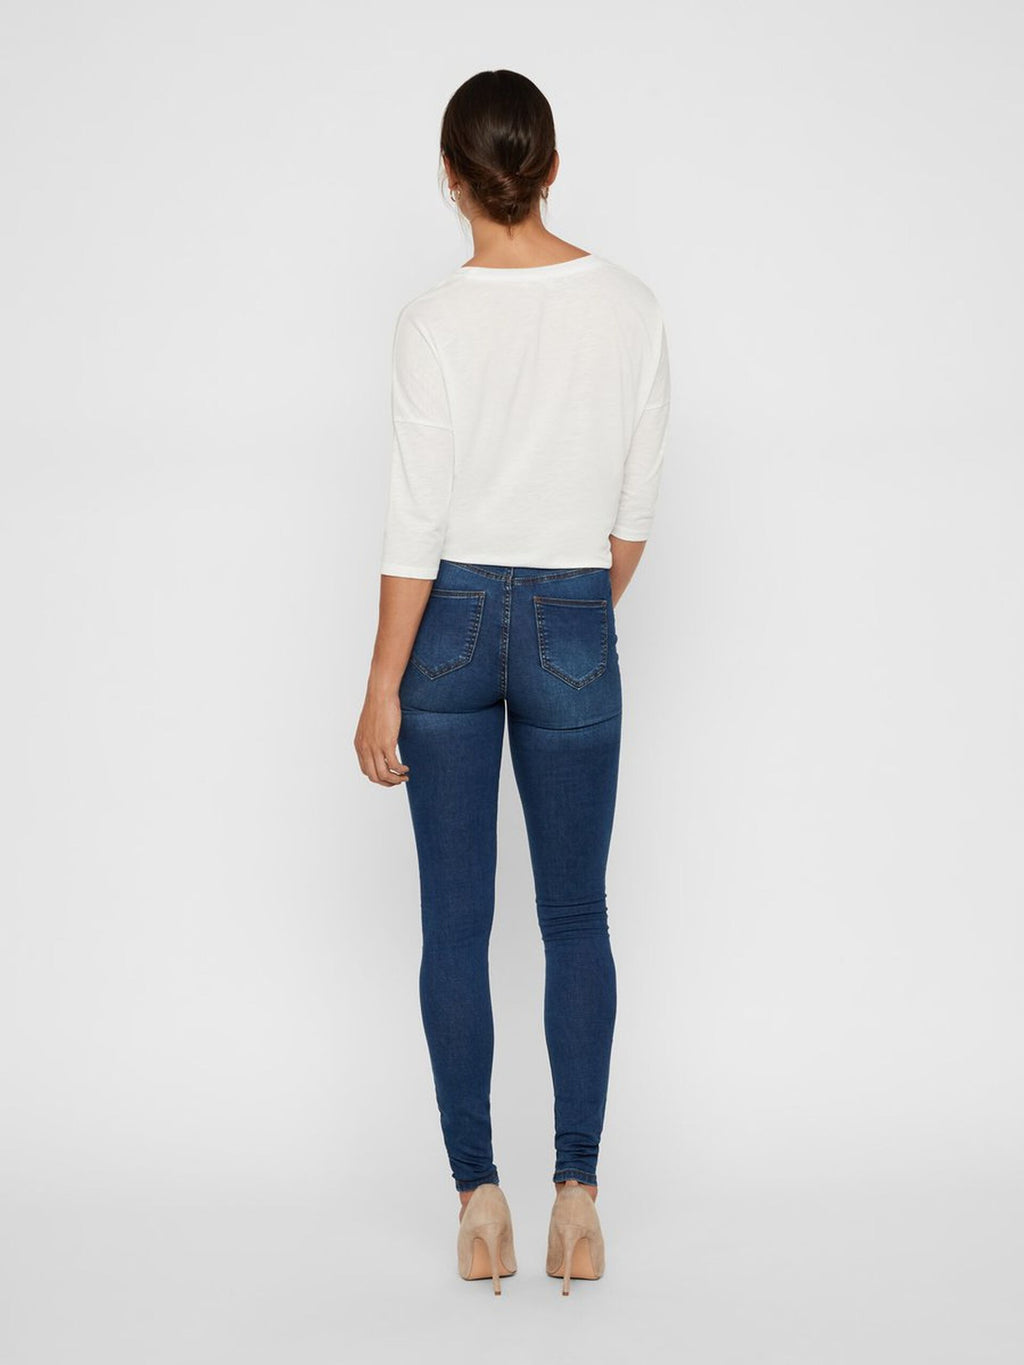 Noisy May Callie High Waist Skinny Fit Jeans - Medium Blue